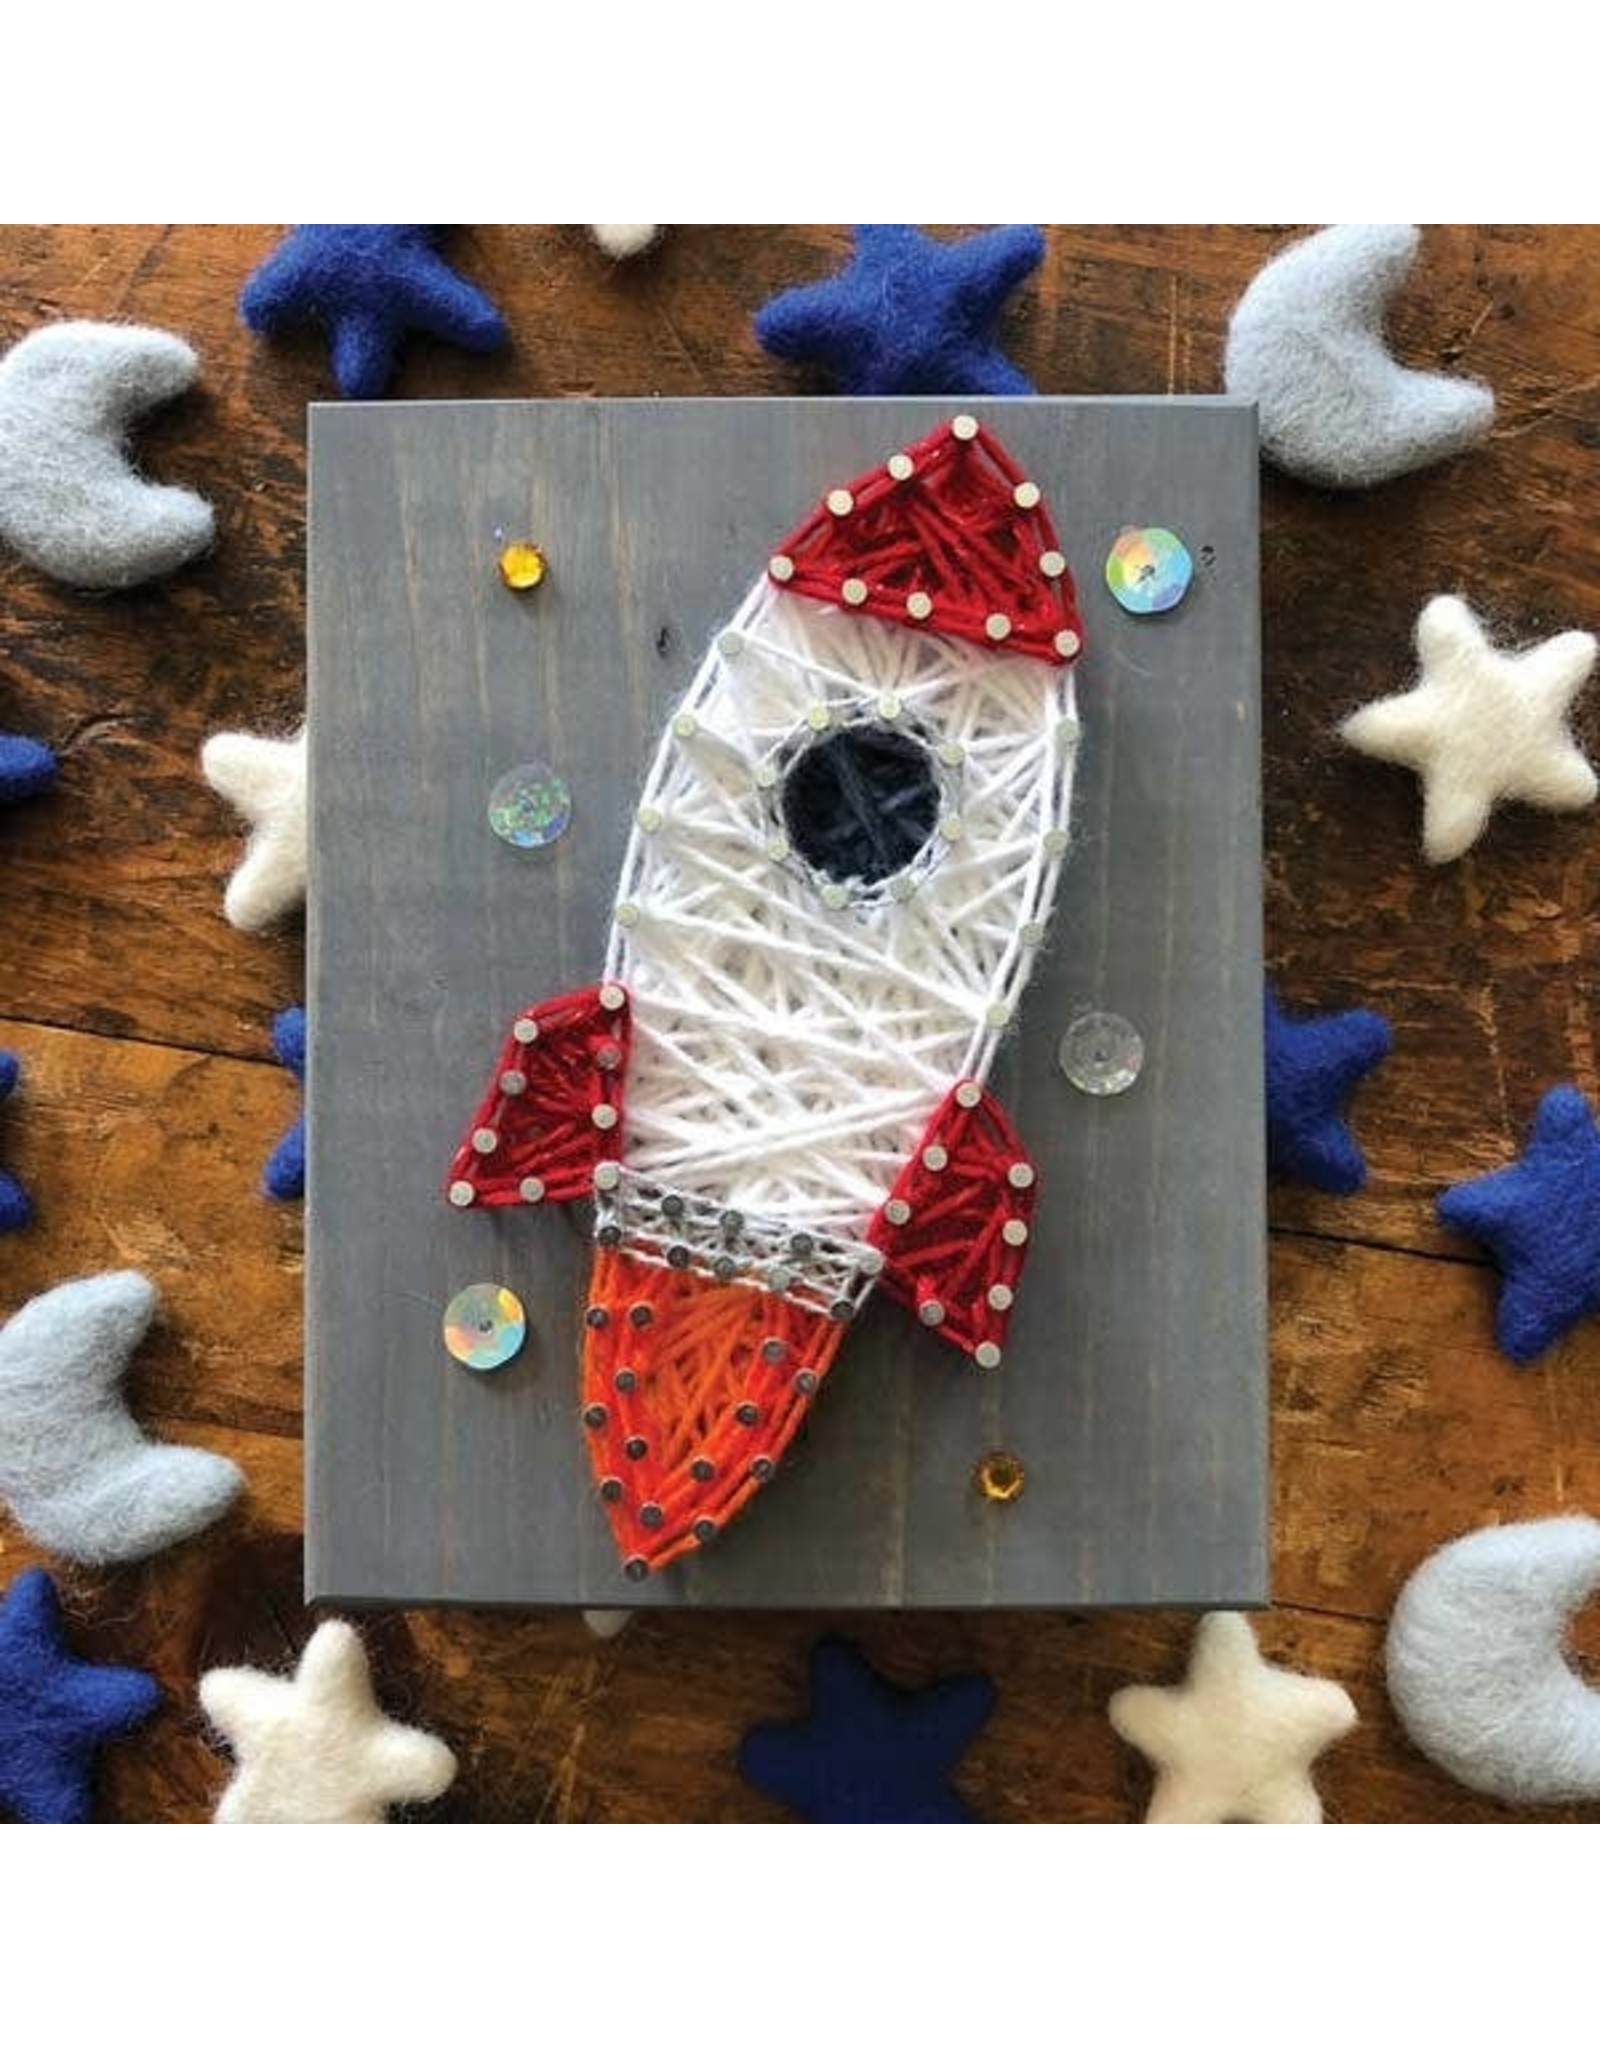 Strung By Shawna Rocket Mini String Art Kit - DIY